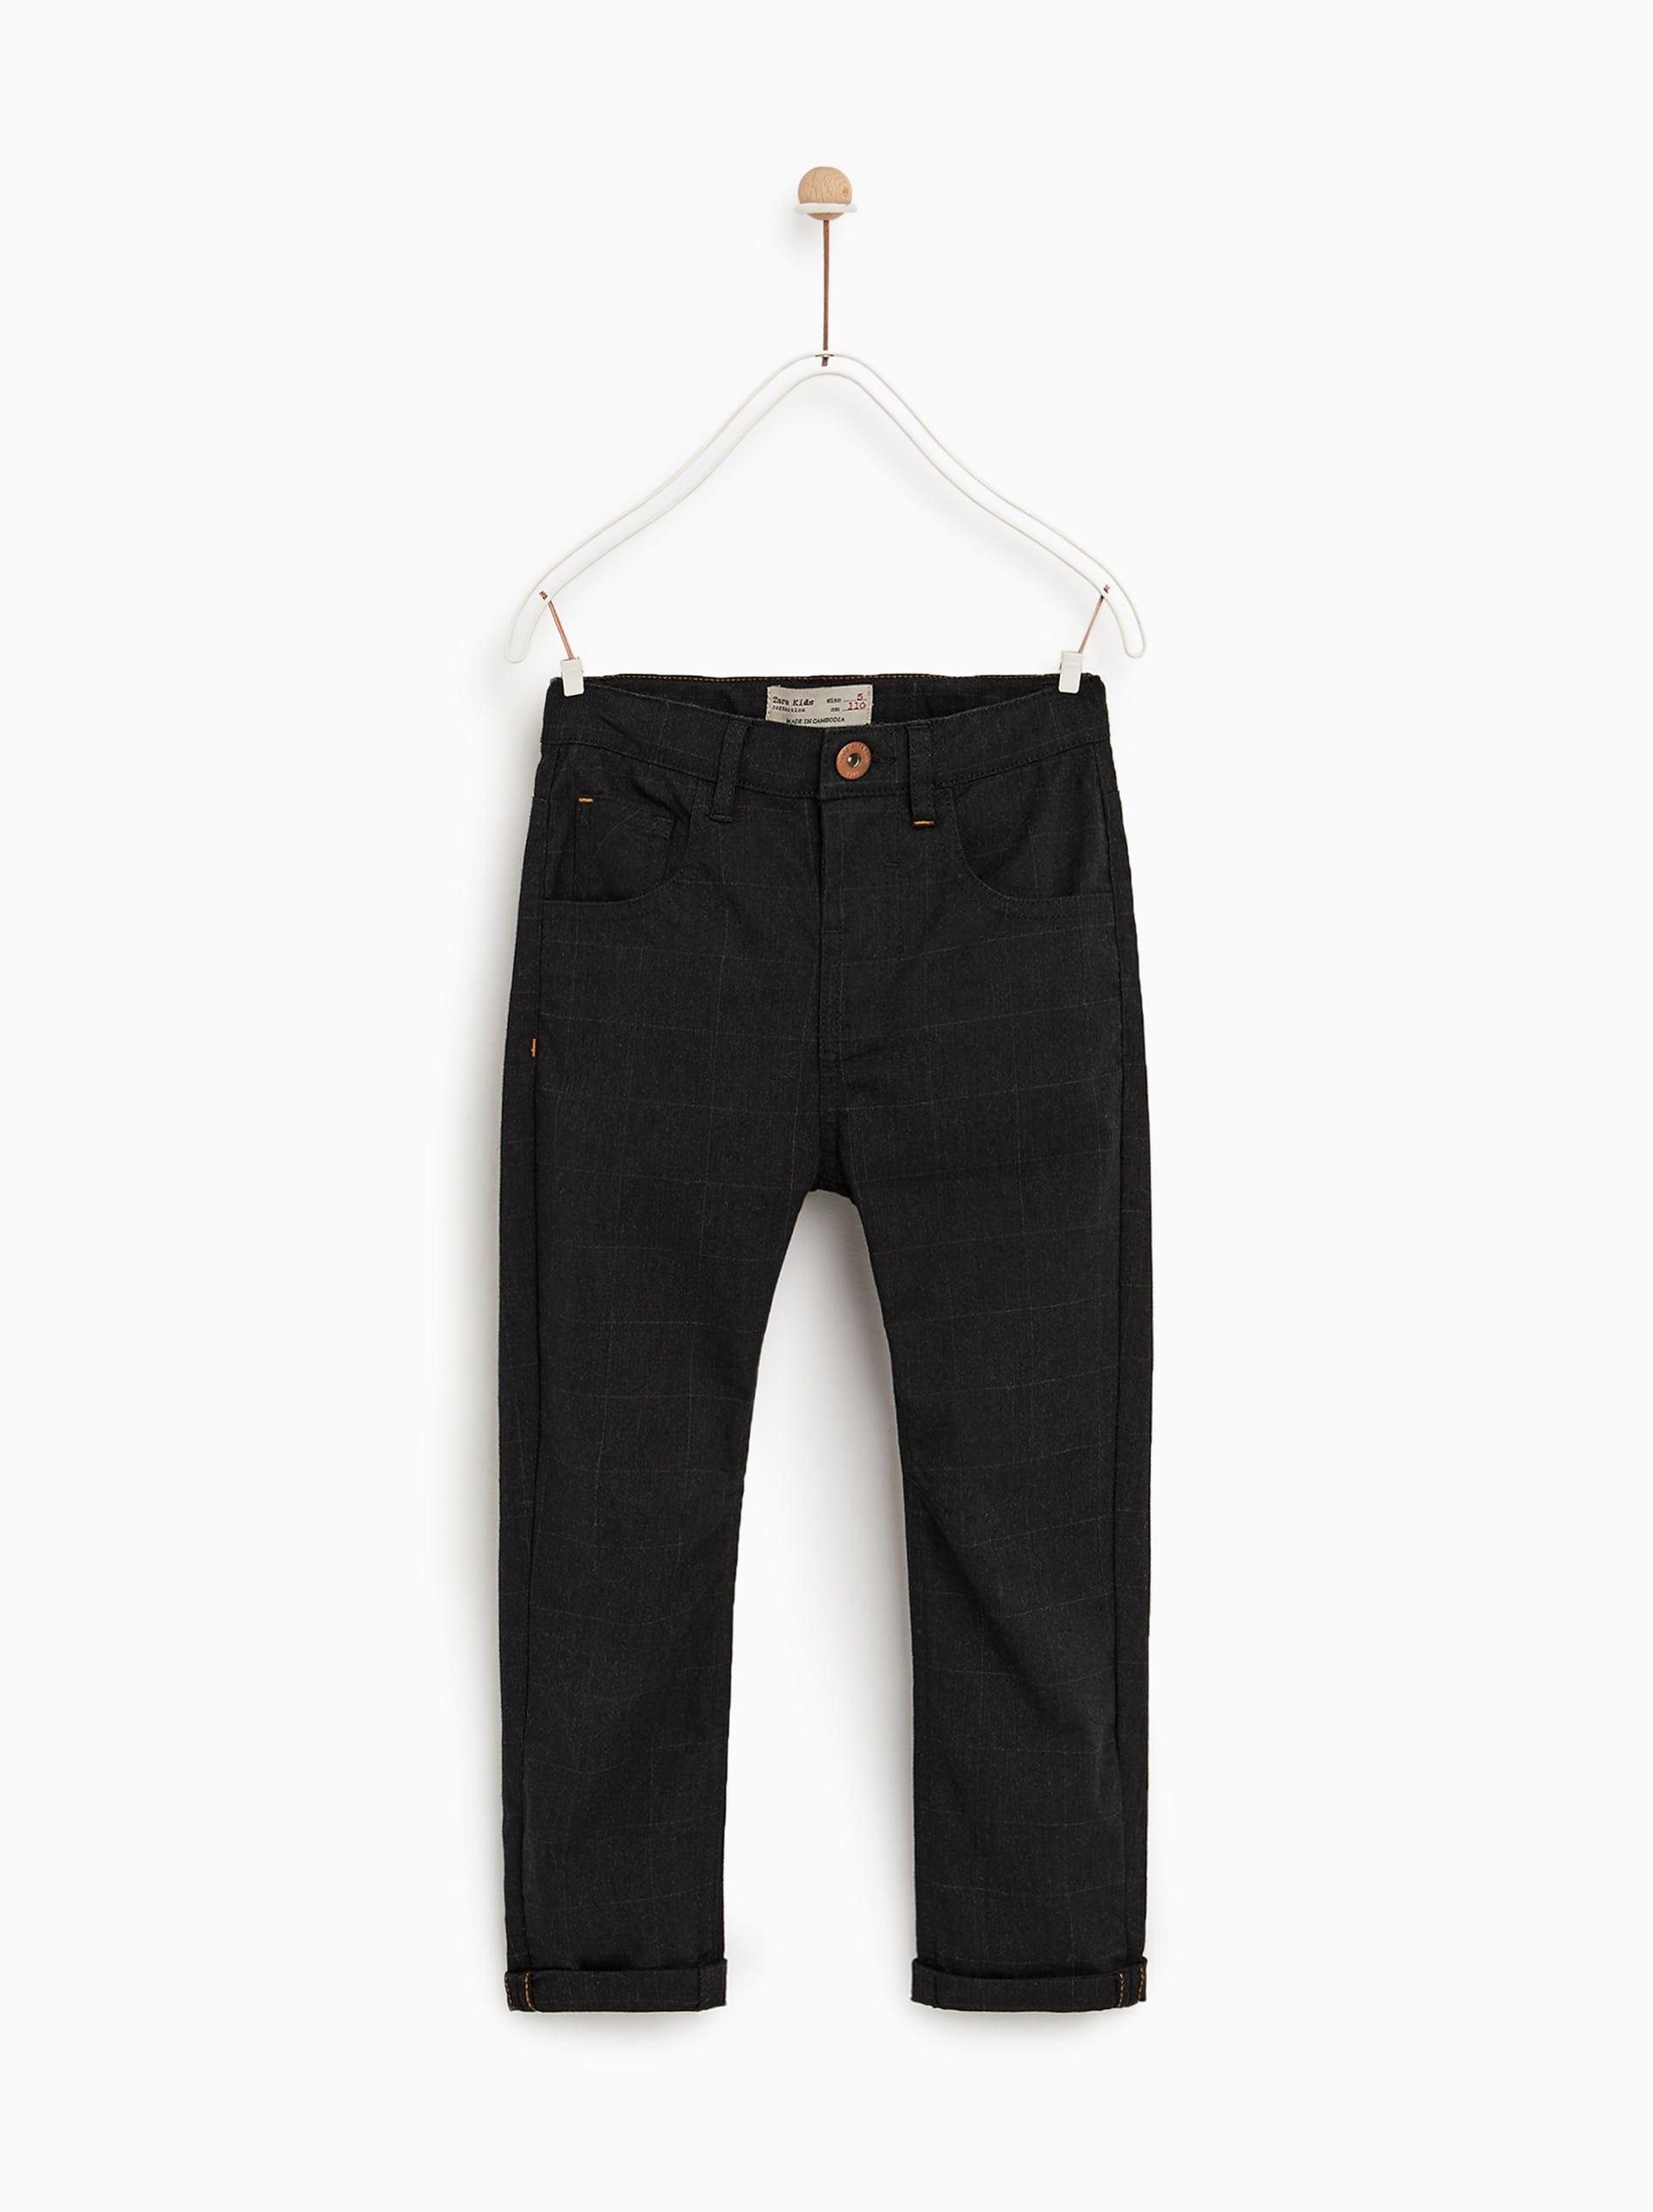 233b7f803 Image 1 of CHECK JEANS WITH POCKETS from Zara | The twins/ Max and ...